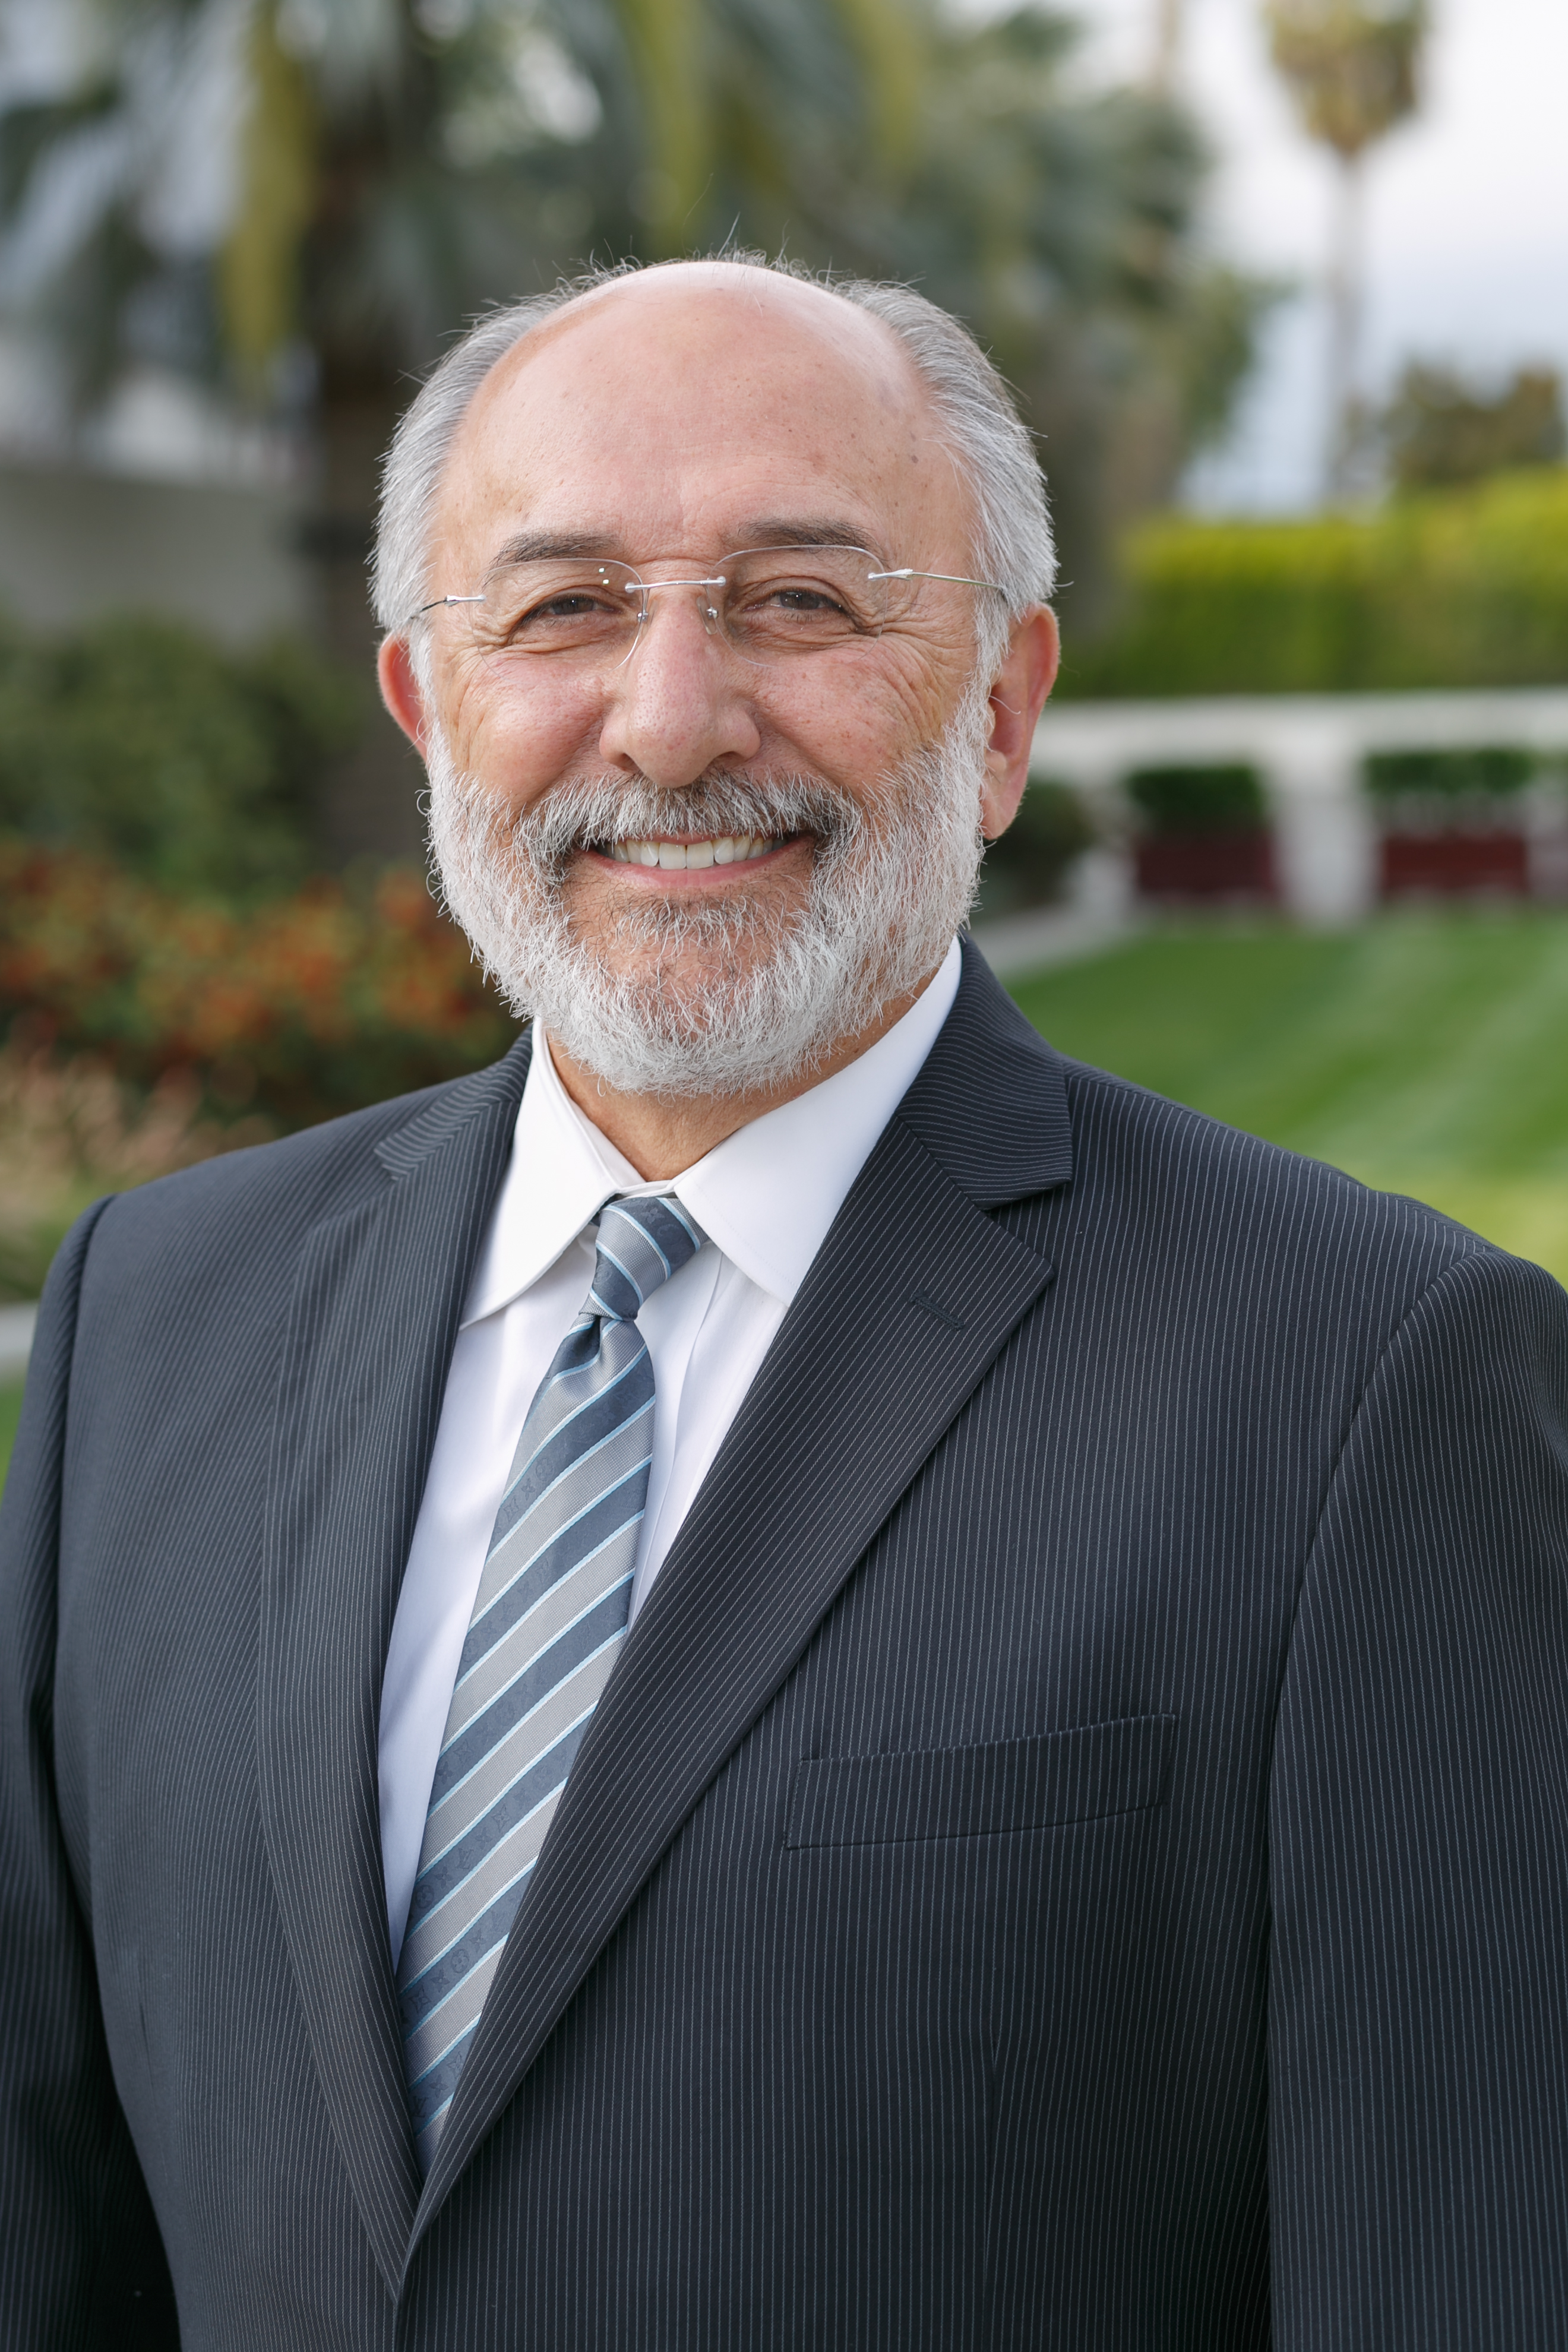 Michael Ortiz Chairman of the Board